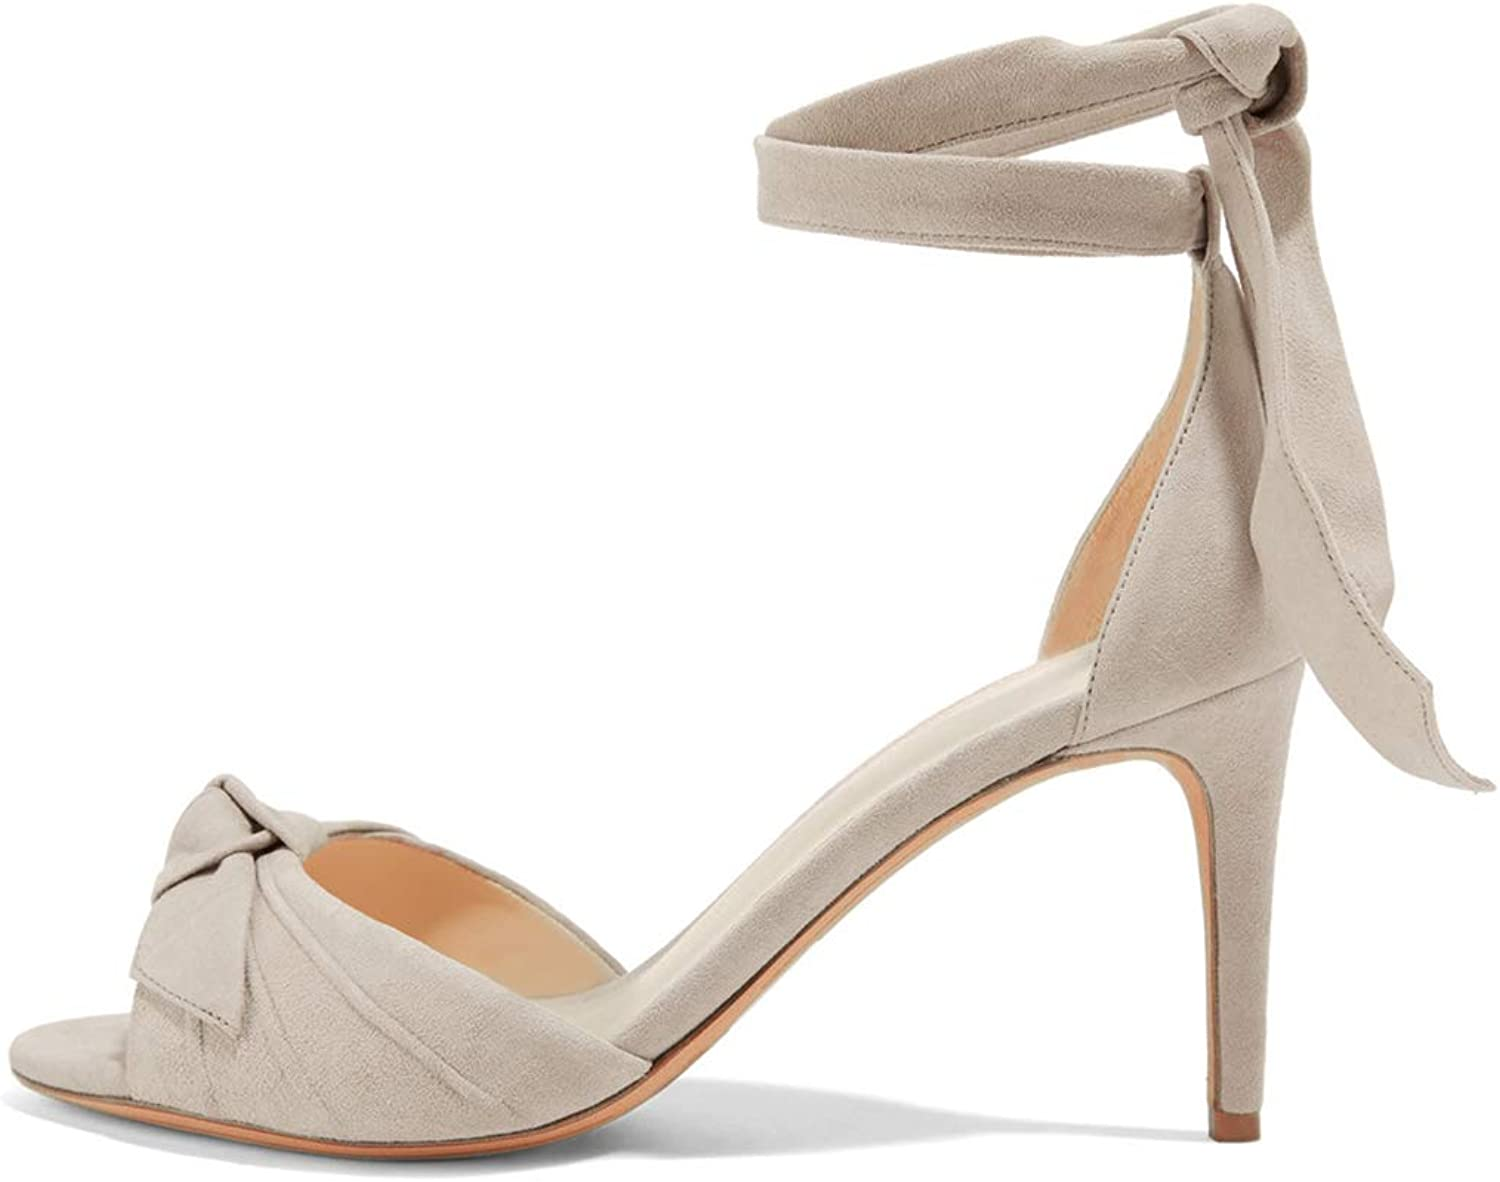 NJ Women Elegant D'Orsay Peep Toe High Heel Sandals Ankle Strap Suede Dress Pumps shoes with Front Bow